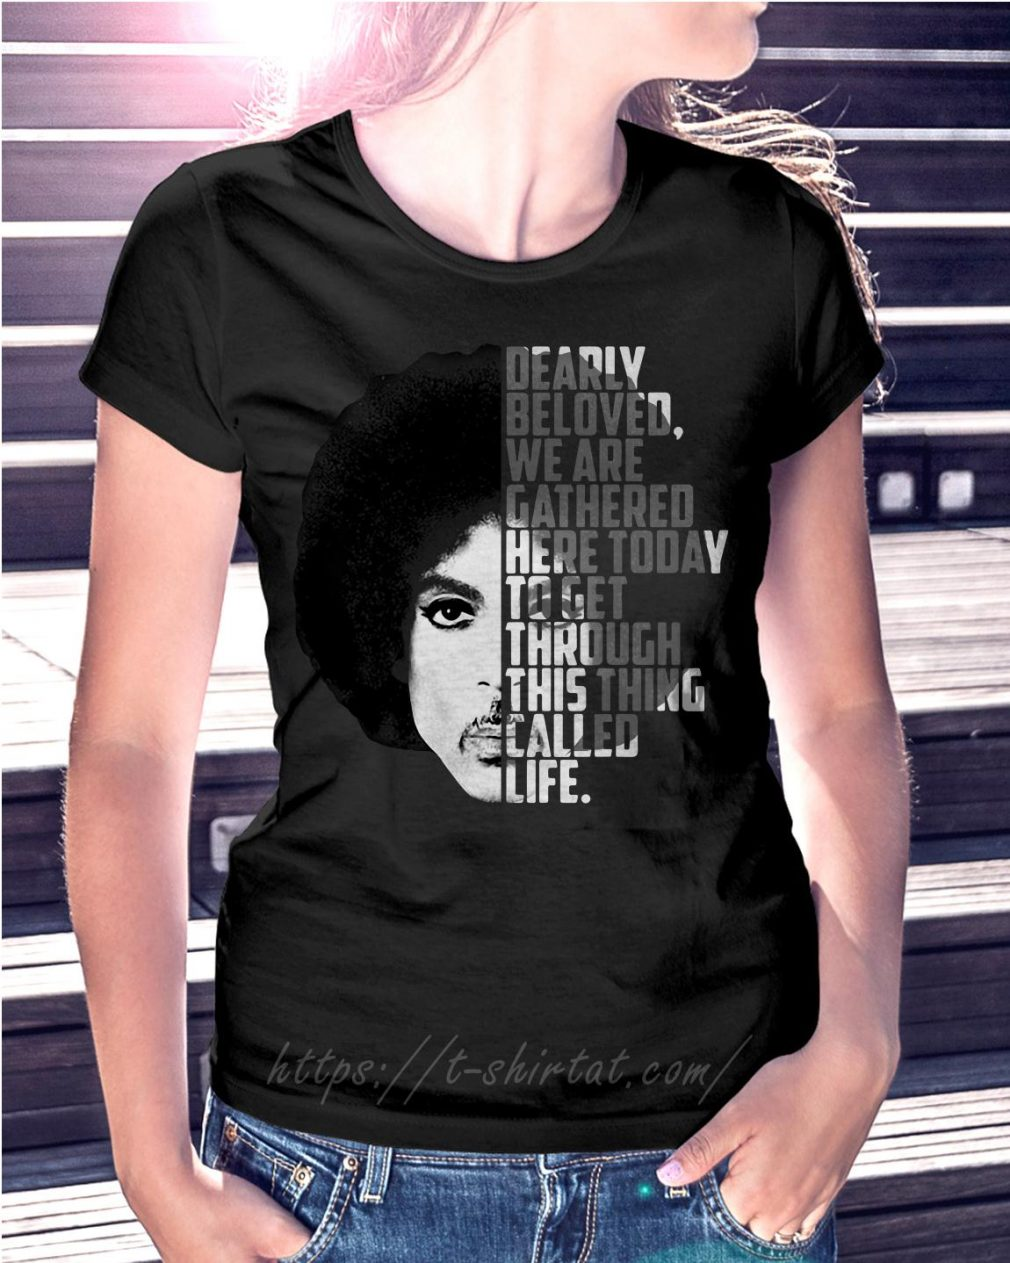 Prince Rogers Nelson dearly beloved we are gathered here today Ladies Tee